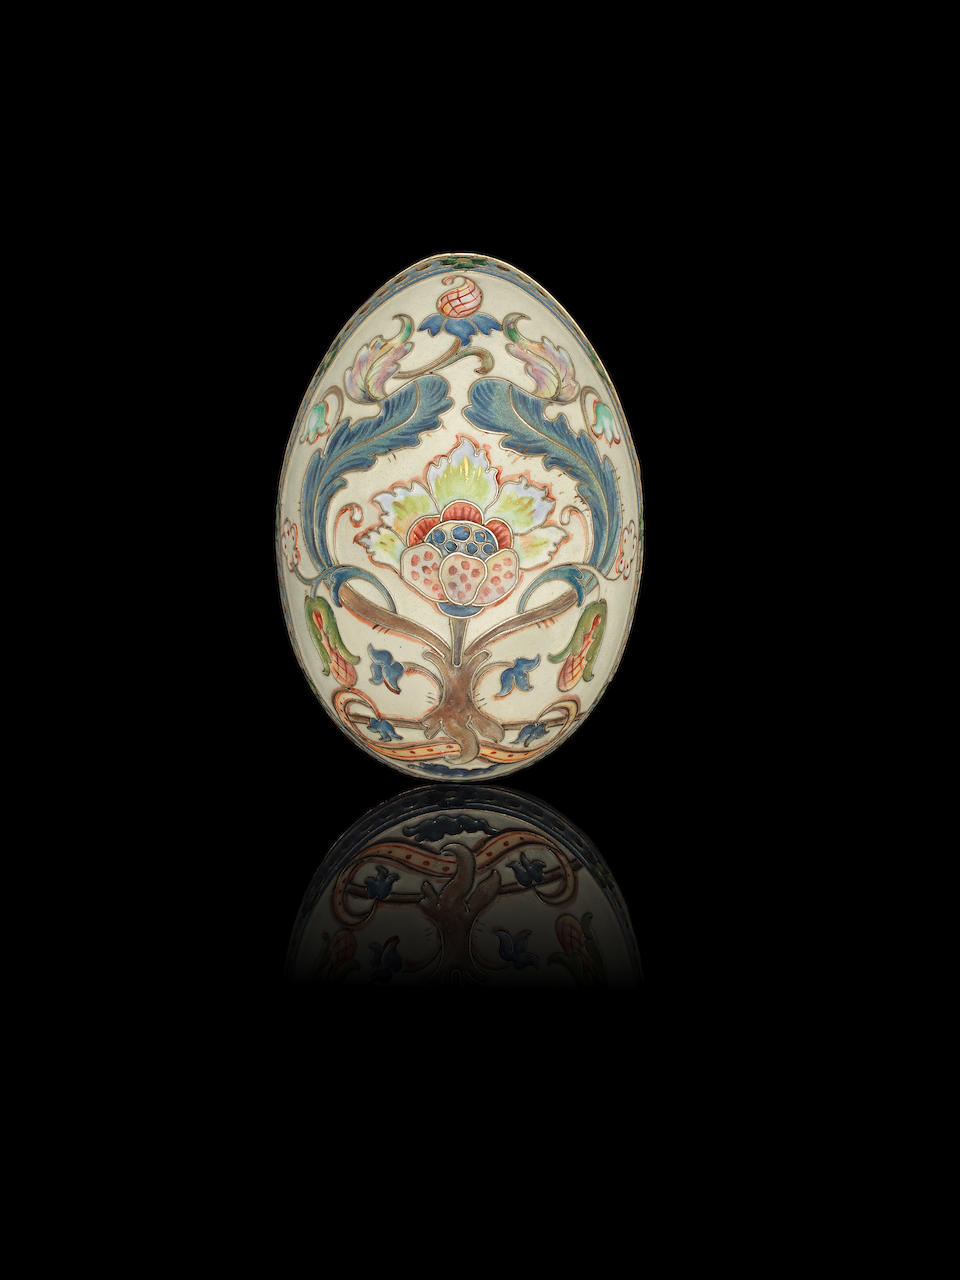 A silver-gilt and enamel easter egg Khlebnikov, Moscow 1908-1917